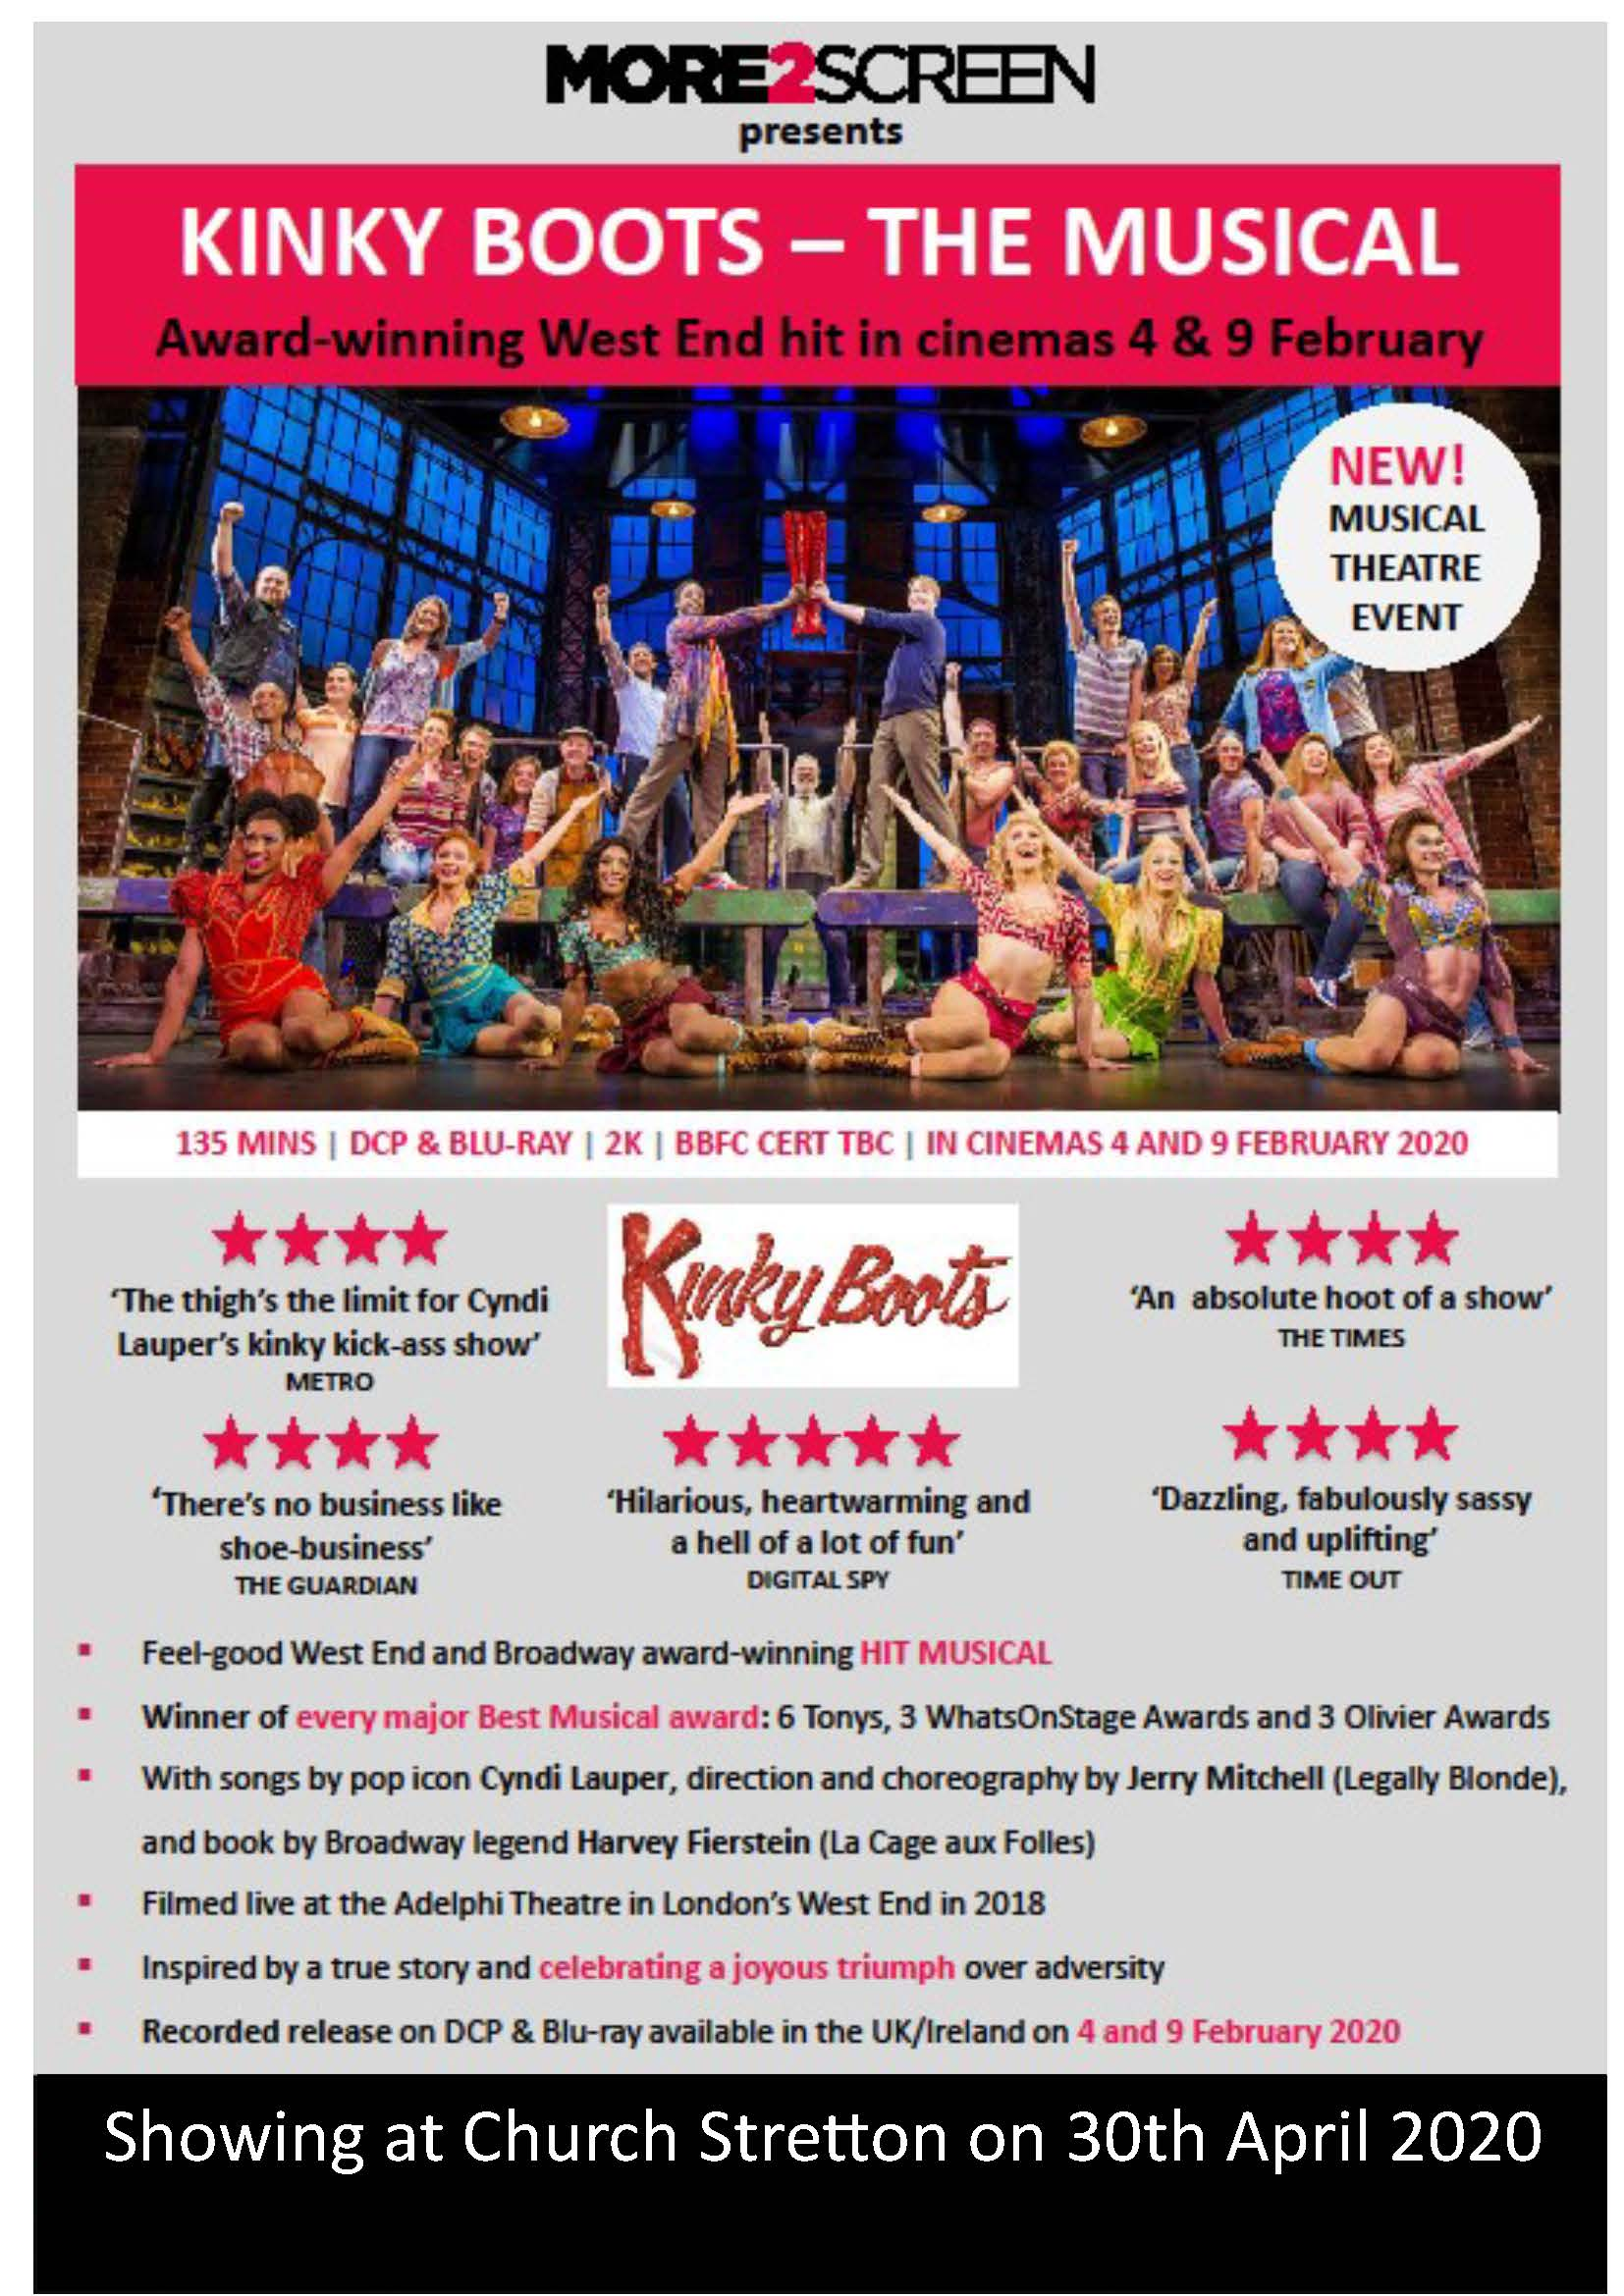 kinky boots early poster